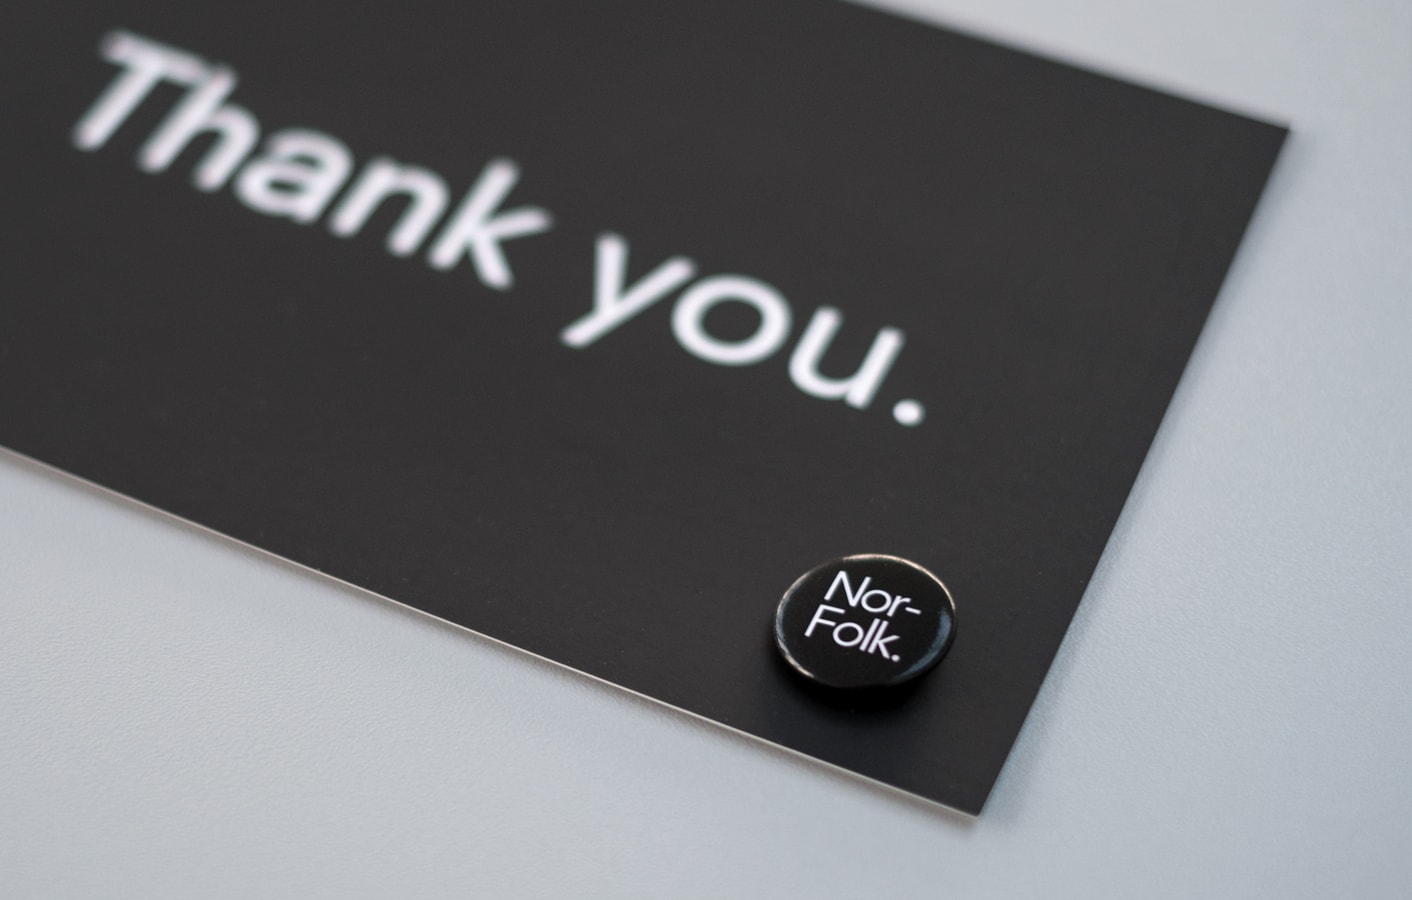 Thank you card and pin badge for Nor–Folk.